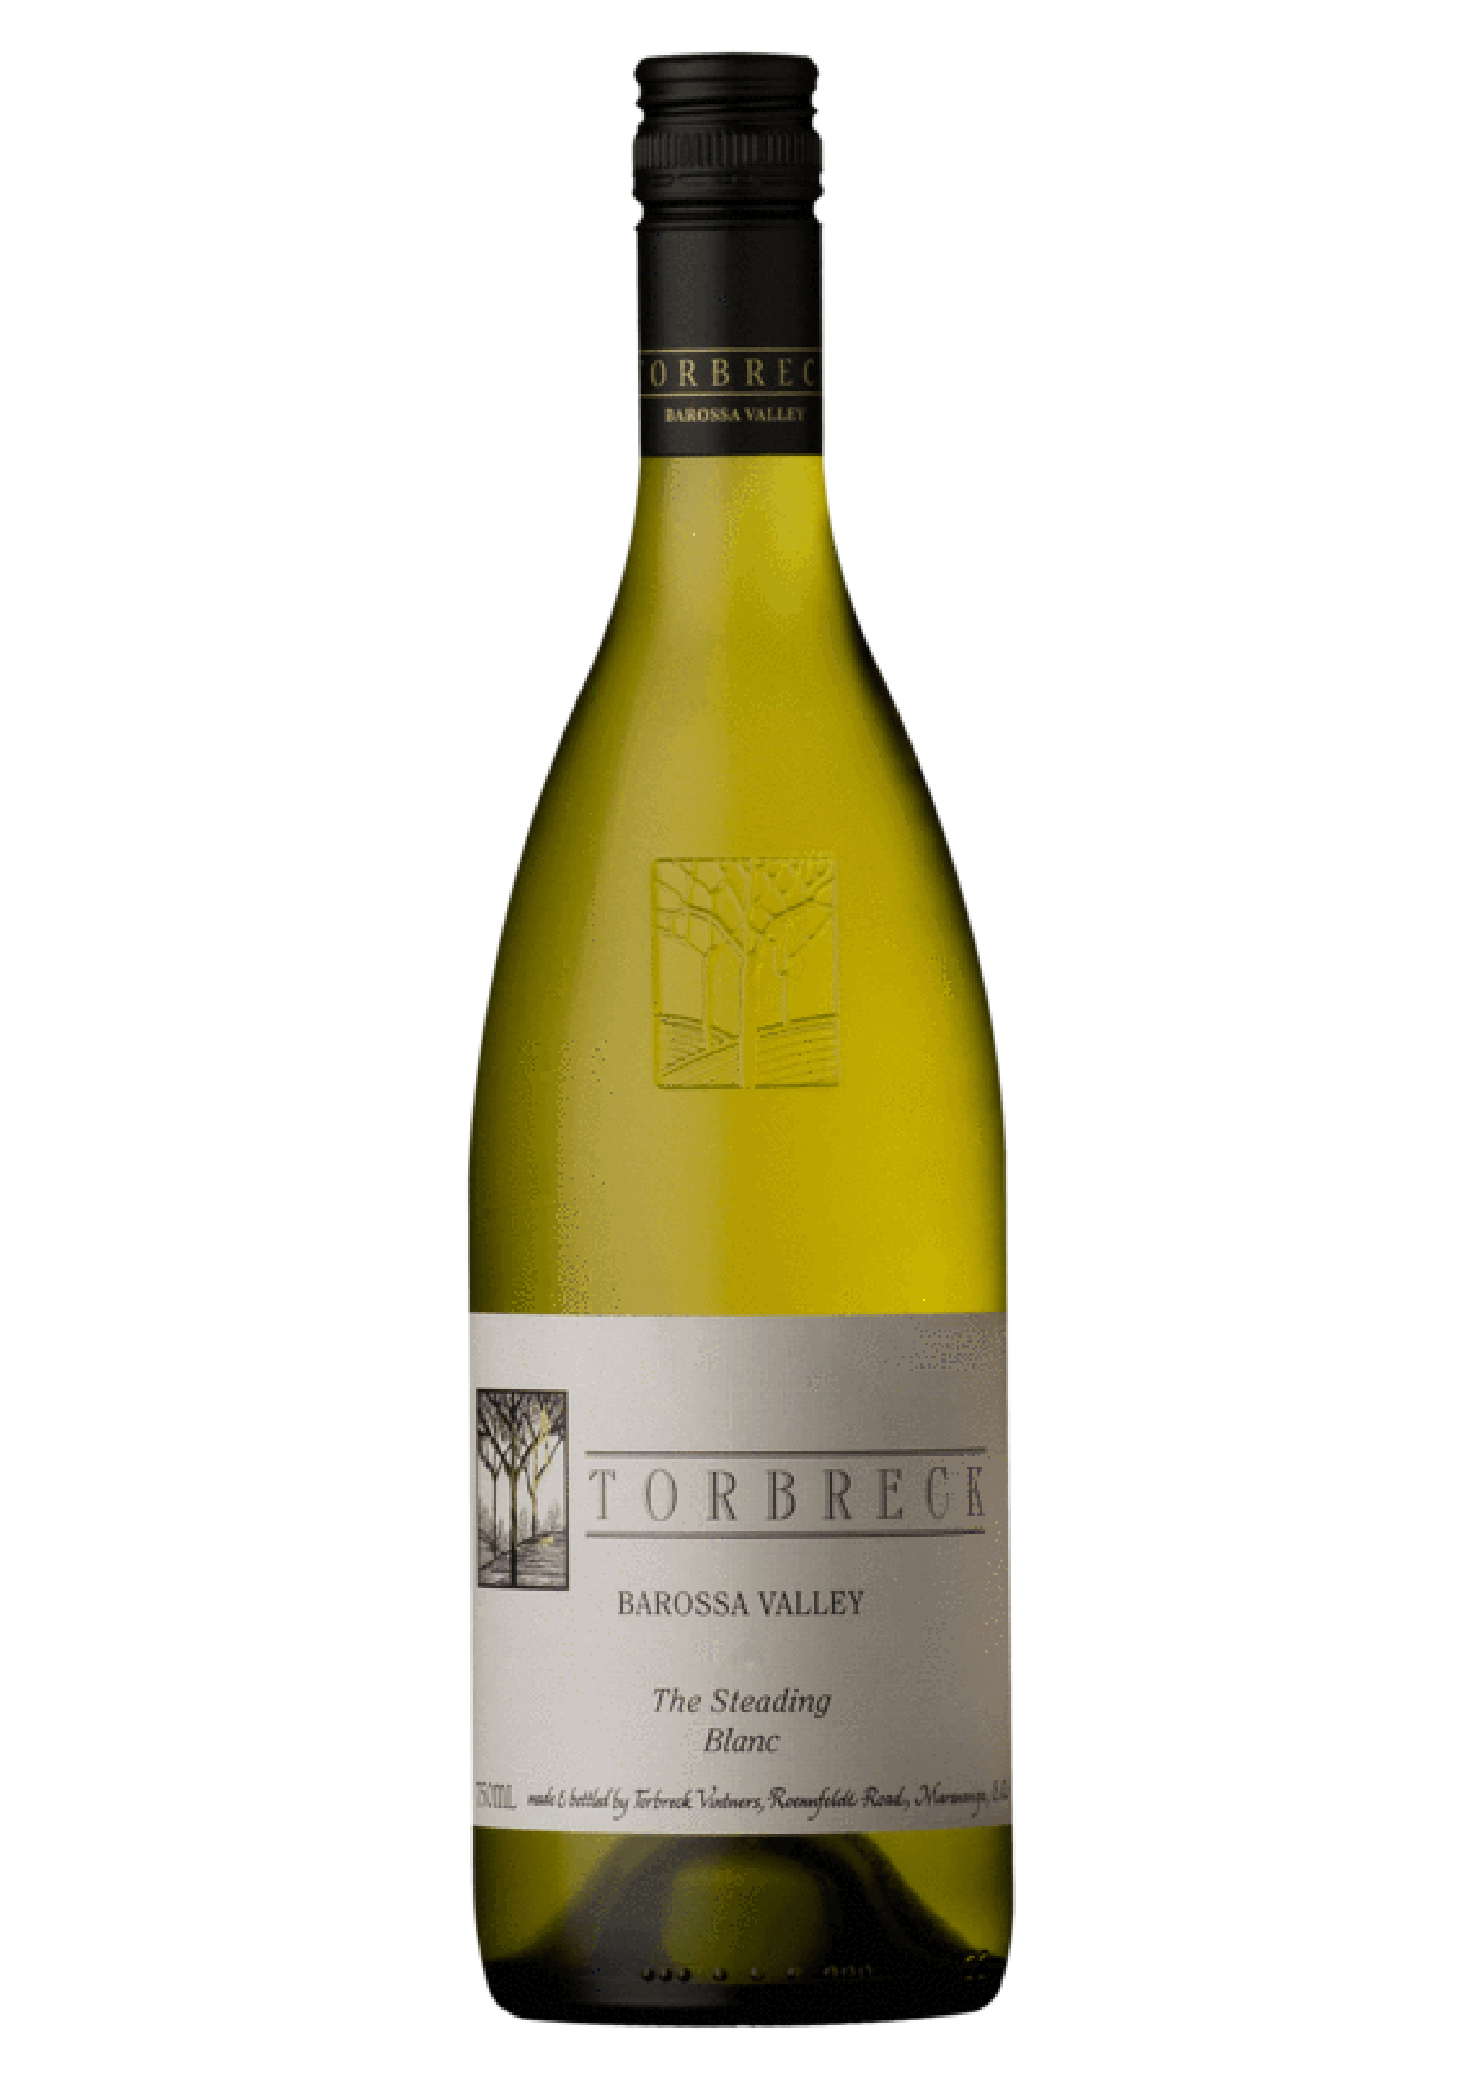 Torbreck - The Steading Blanc